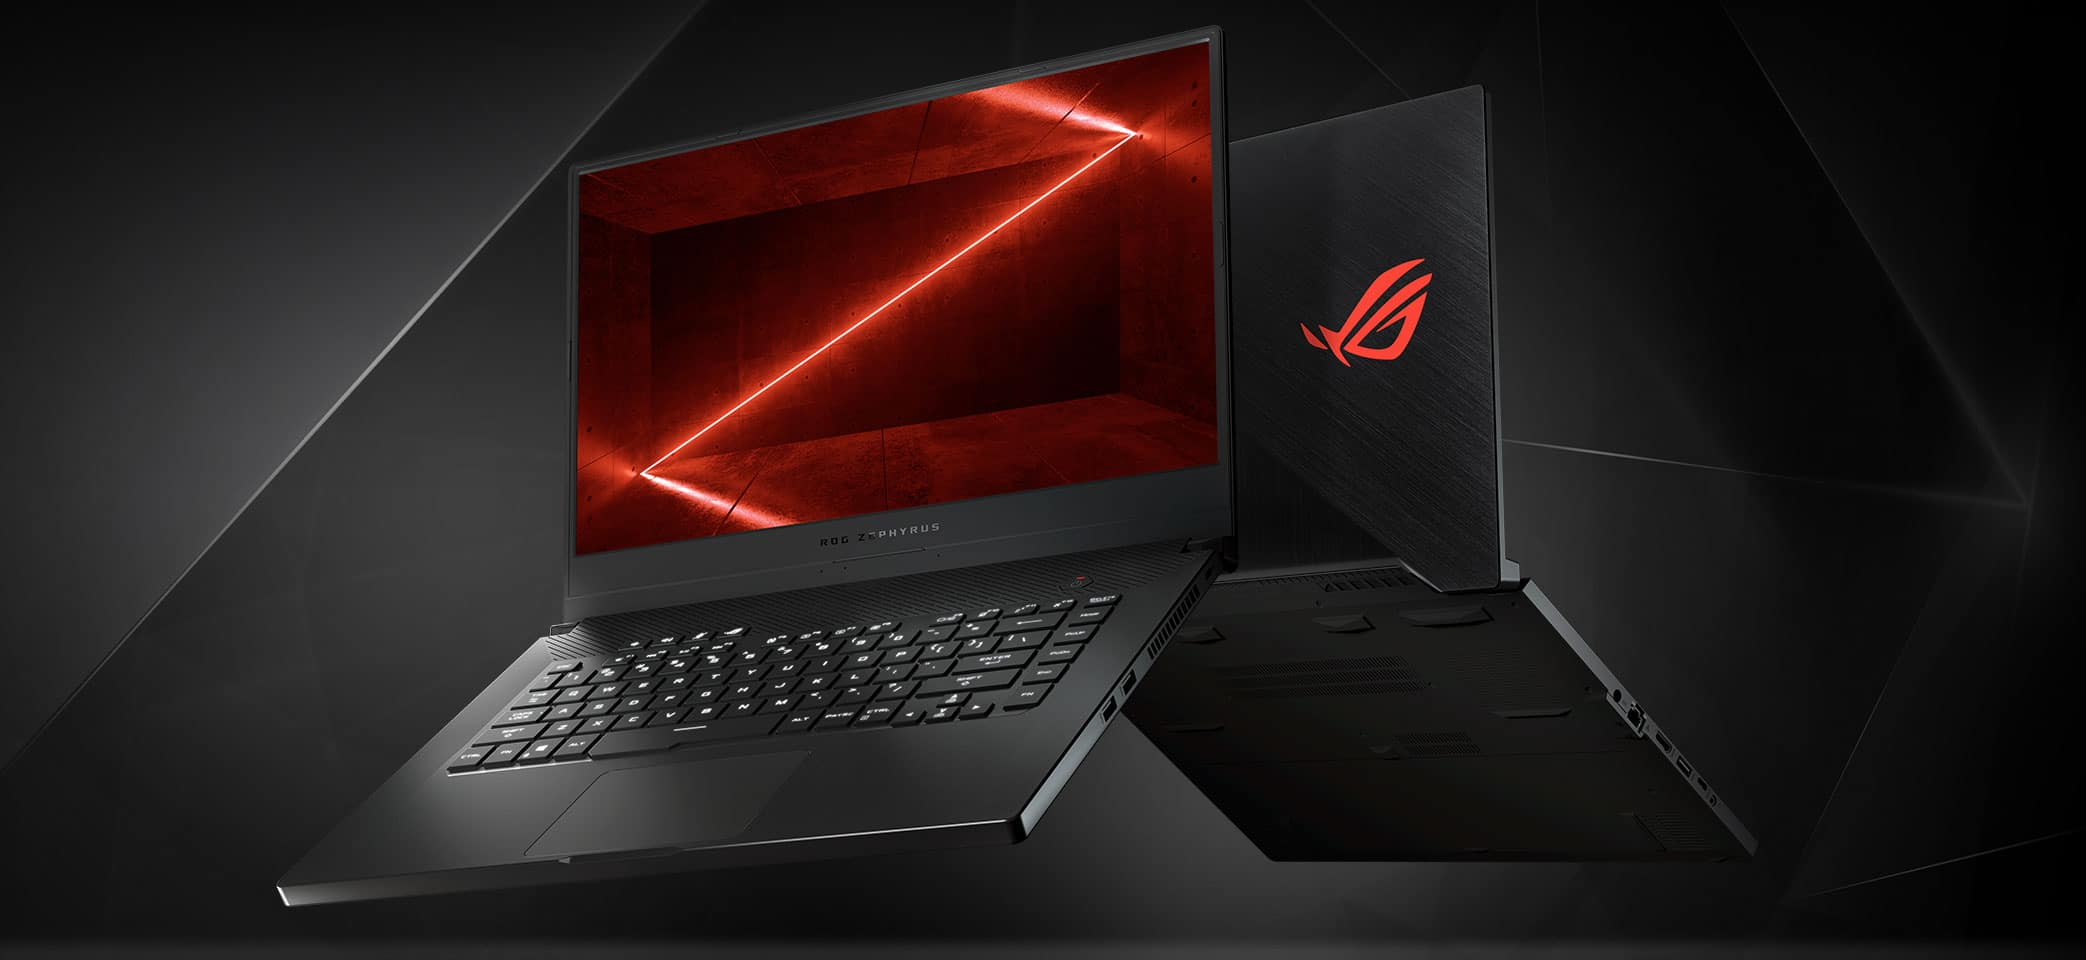 Asus Zephyrus G GA502 - great price, but with compromises